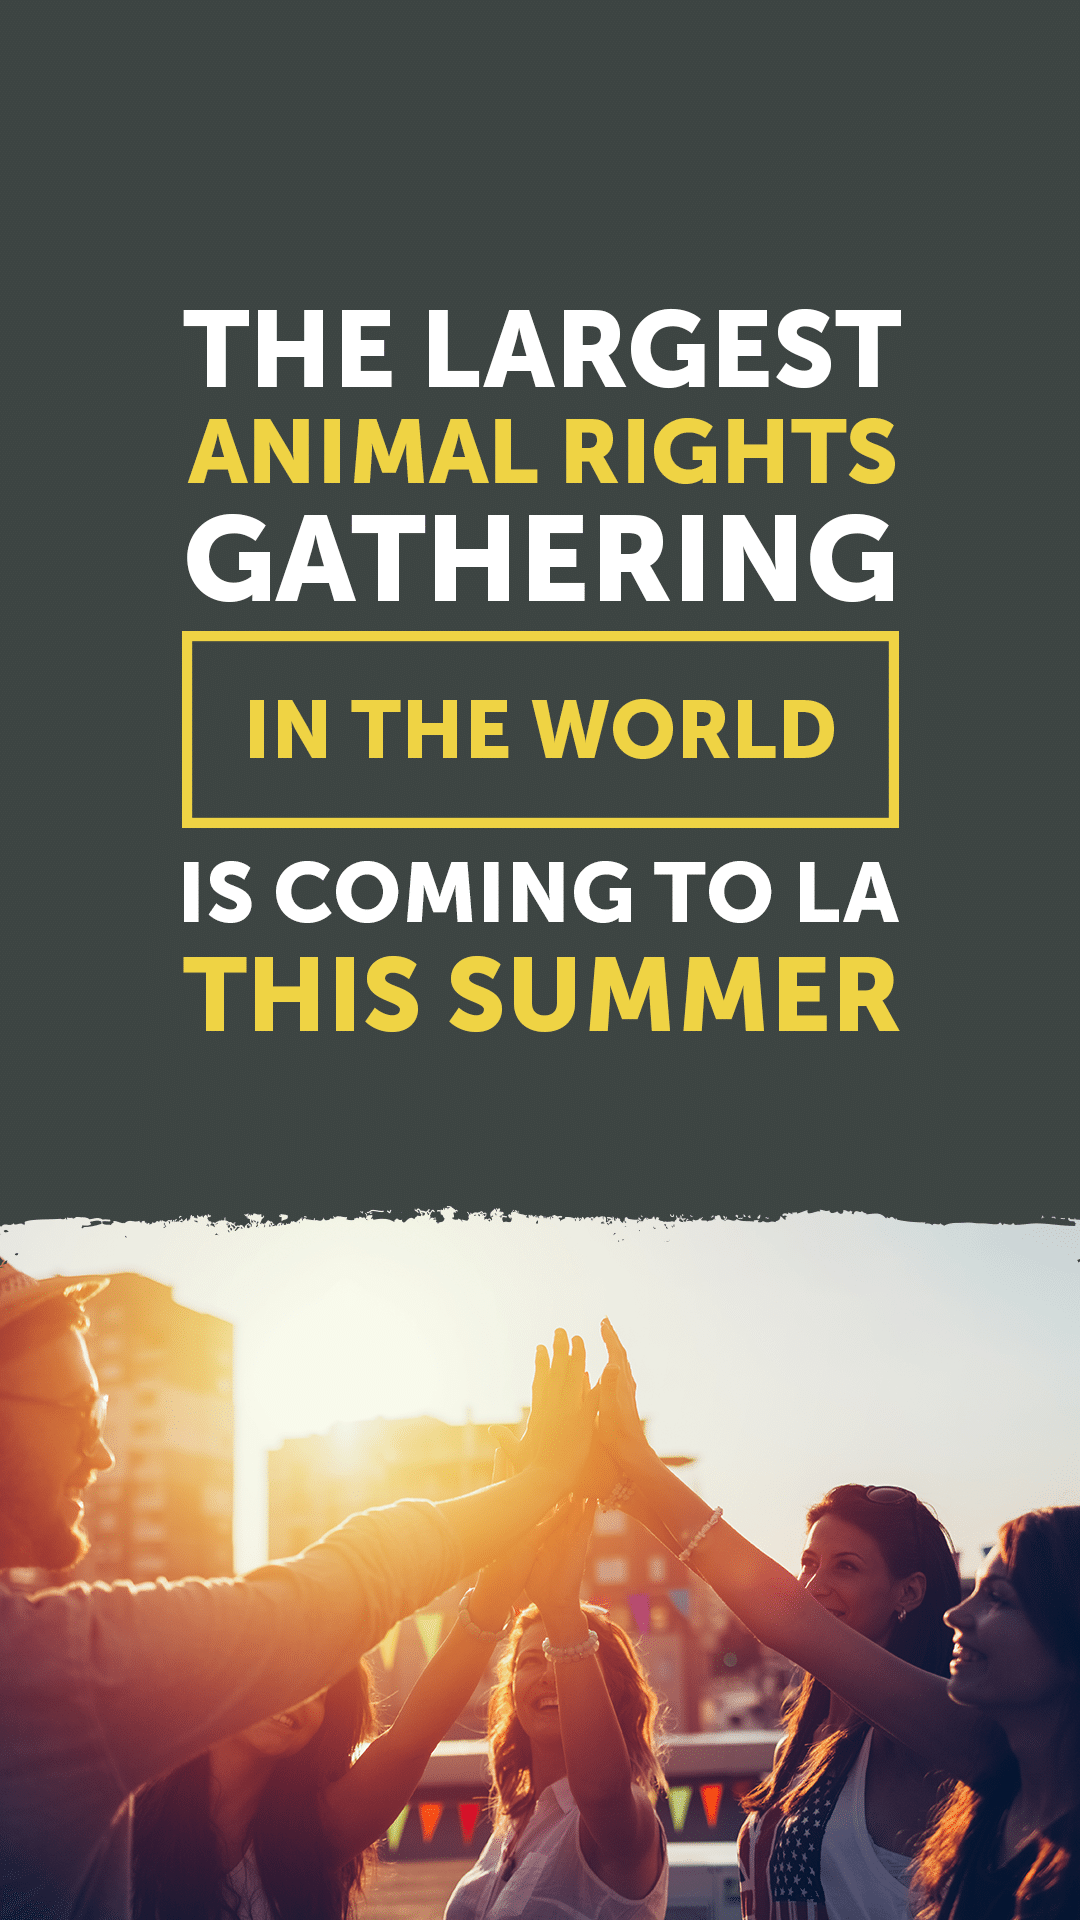 The Largest Animal Rights Gathering in the World Is Coming to LA This Summer